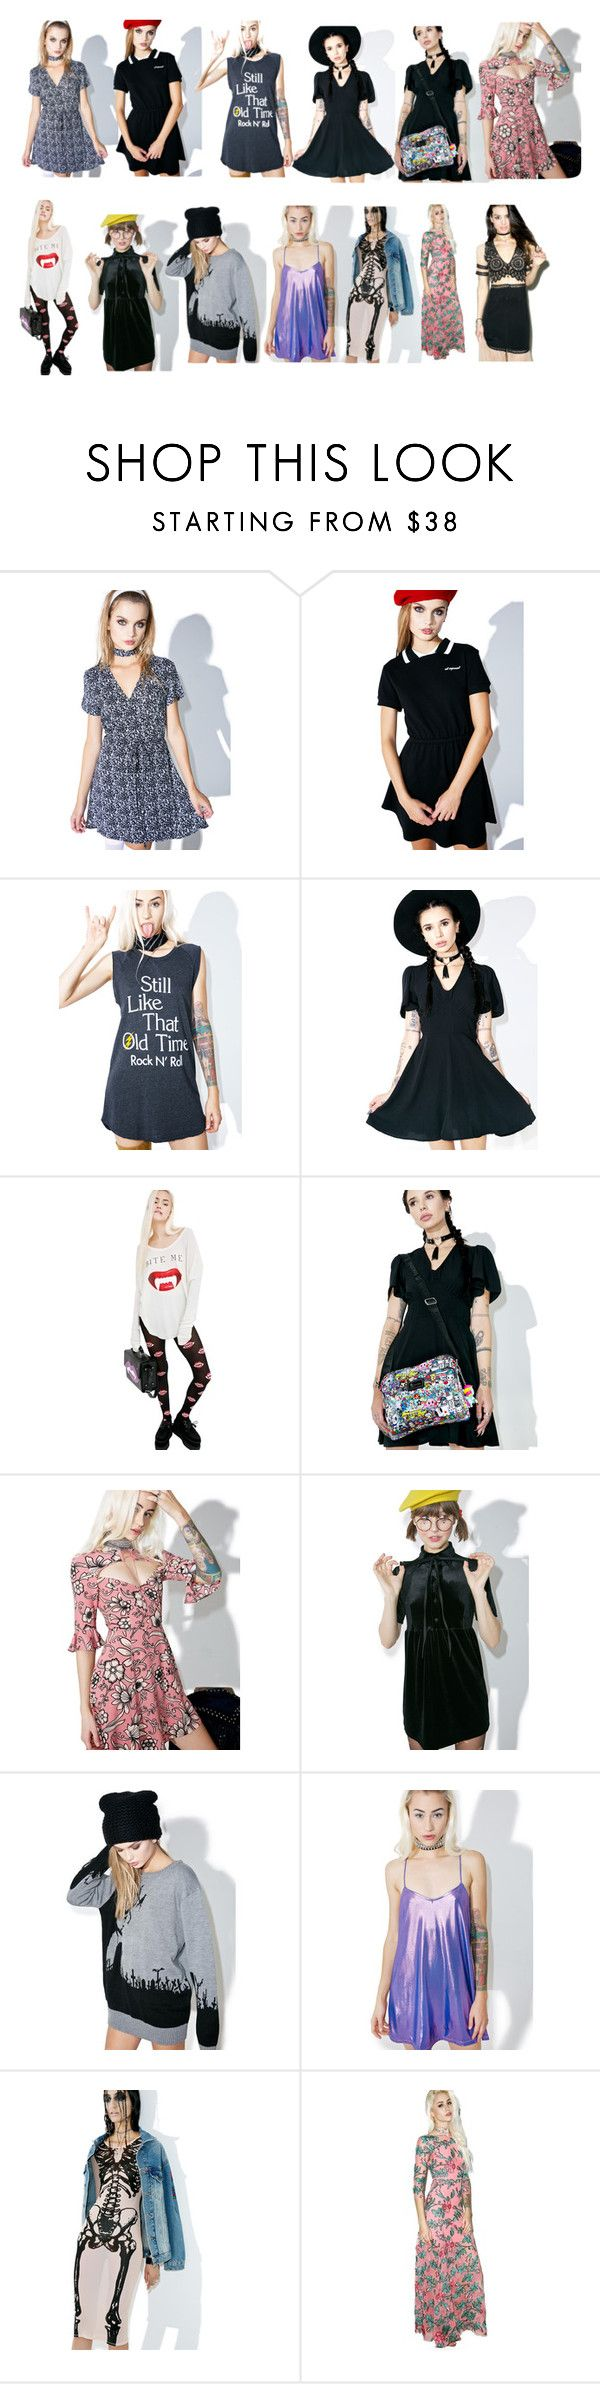 """""""Untitled #104"""" by funghoul39 ❤ liked on Polyvore featuring Valfré, Junk Food Clothing, Motel, Wildfox, Tokidoki, For Love & Lemons, Current Mood and Iron Fist"""